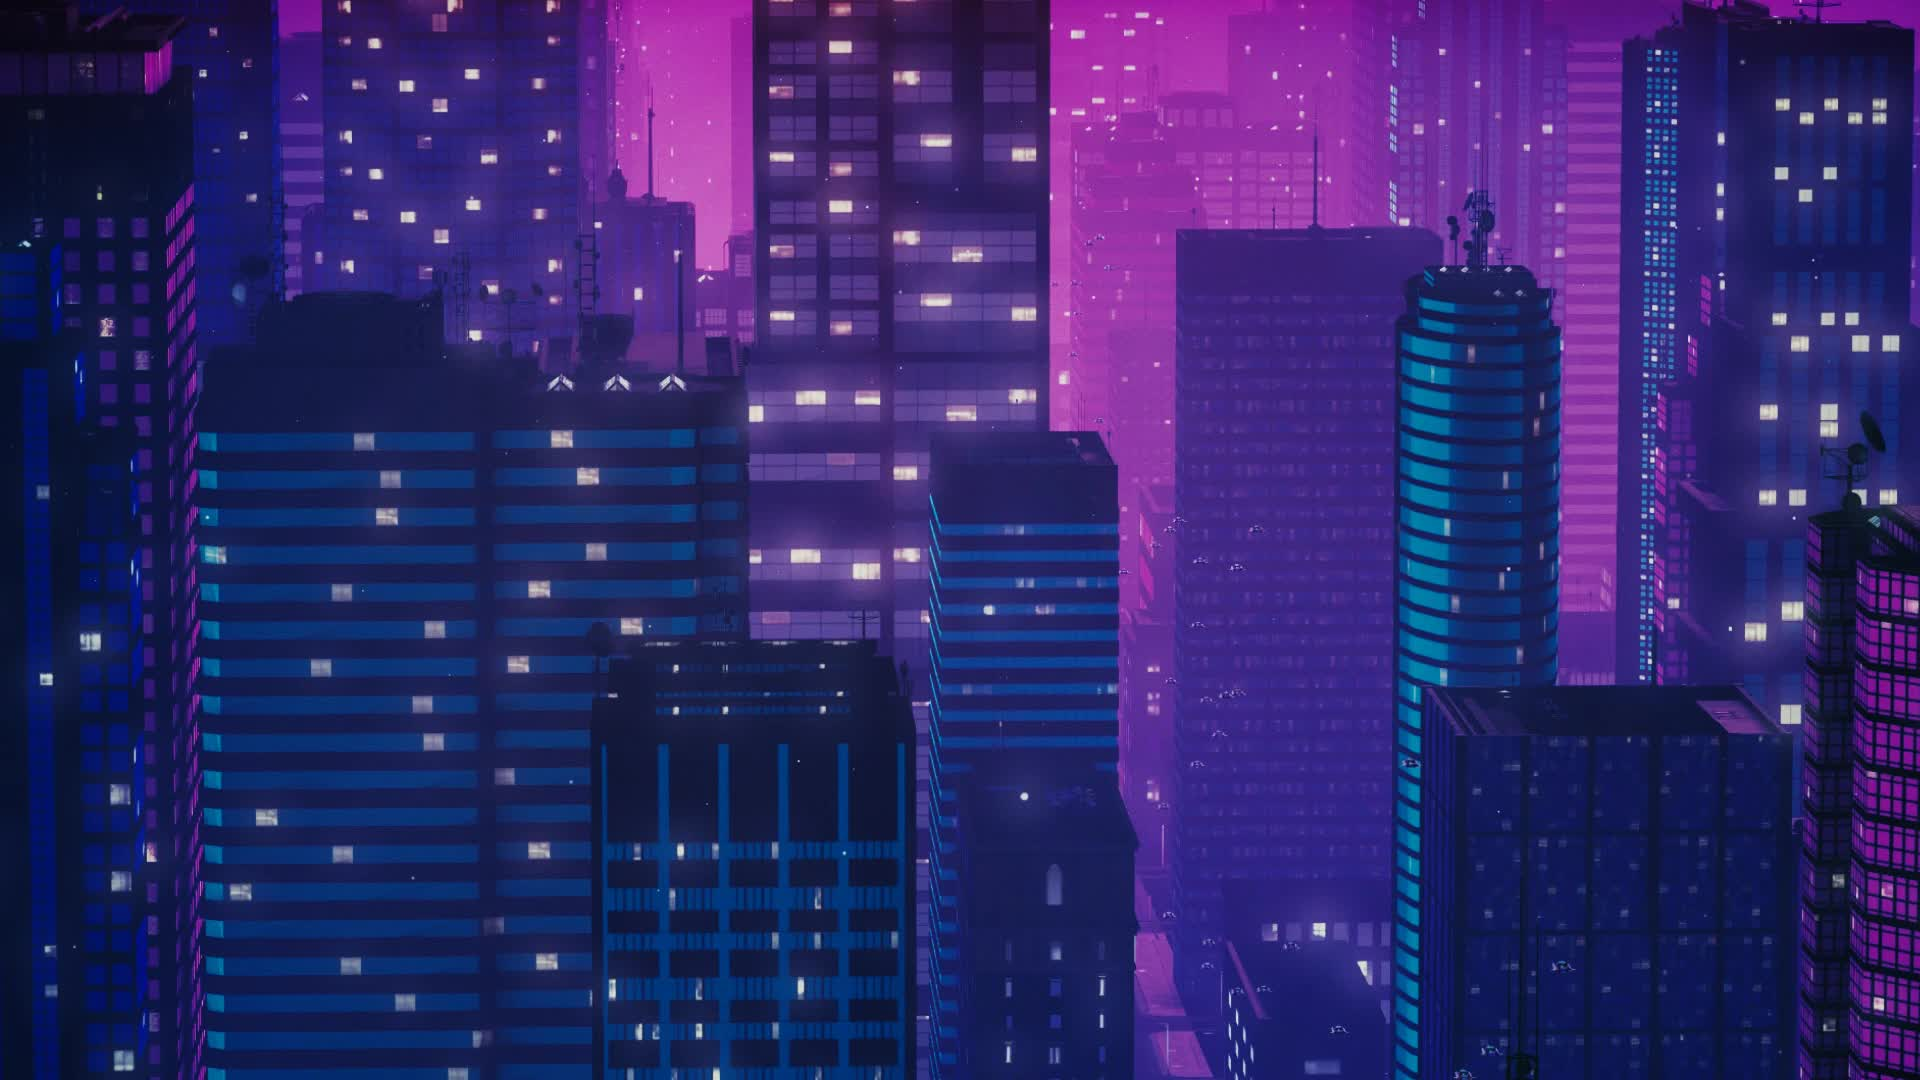 Synthwave Retro Gifs Search | Search & Share on Homdor